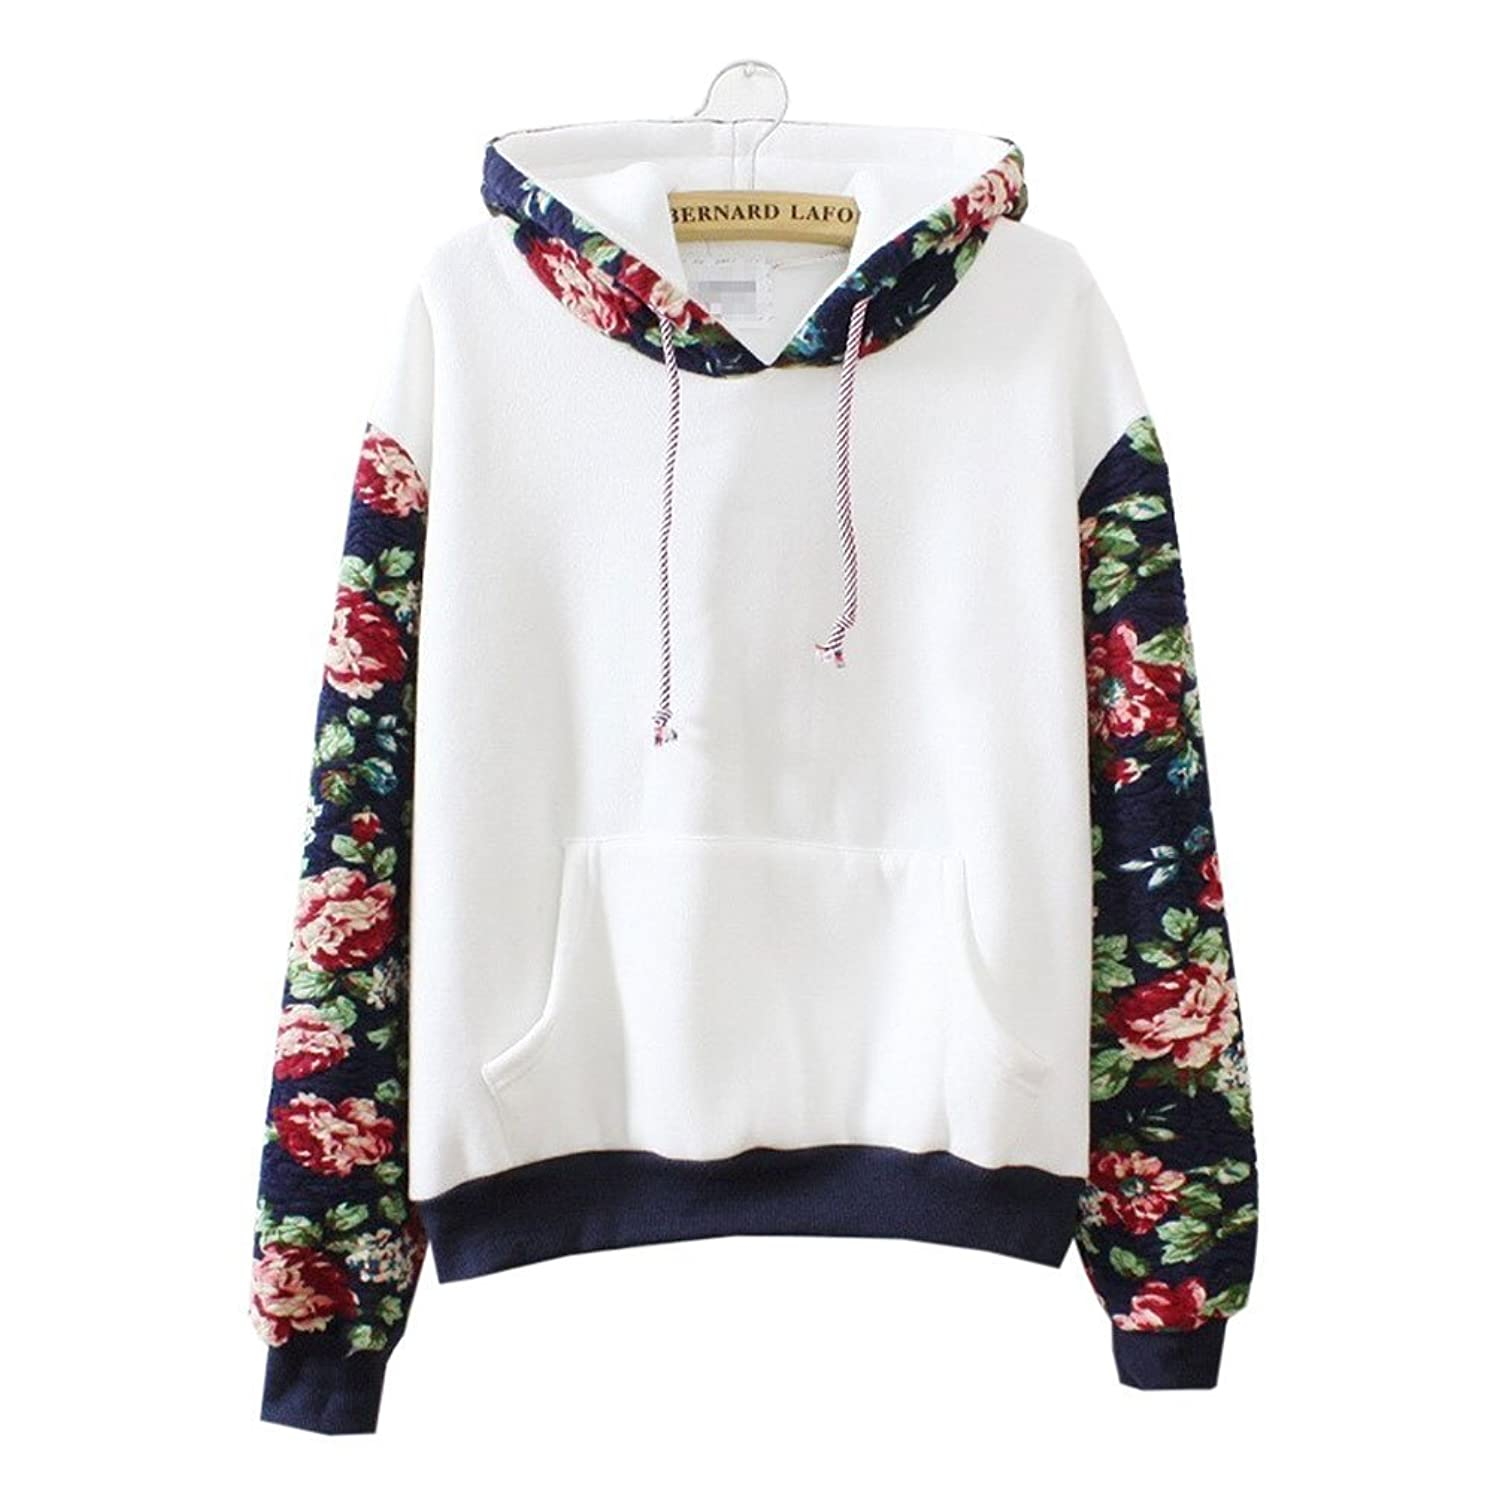 Cute Hoodies Sweater Pullover Warm Fleece Lined Flowers Sleeve White Medium